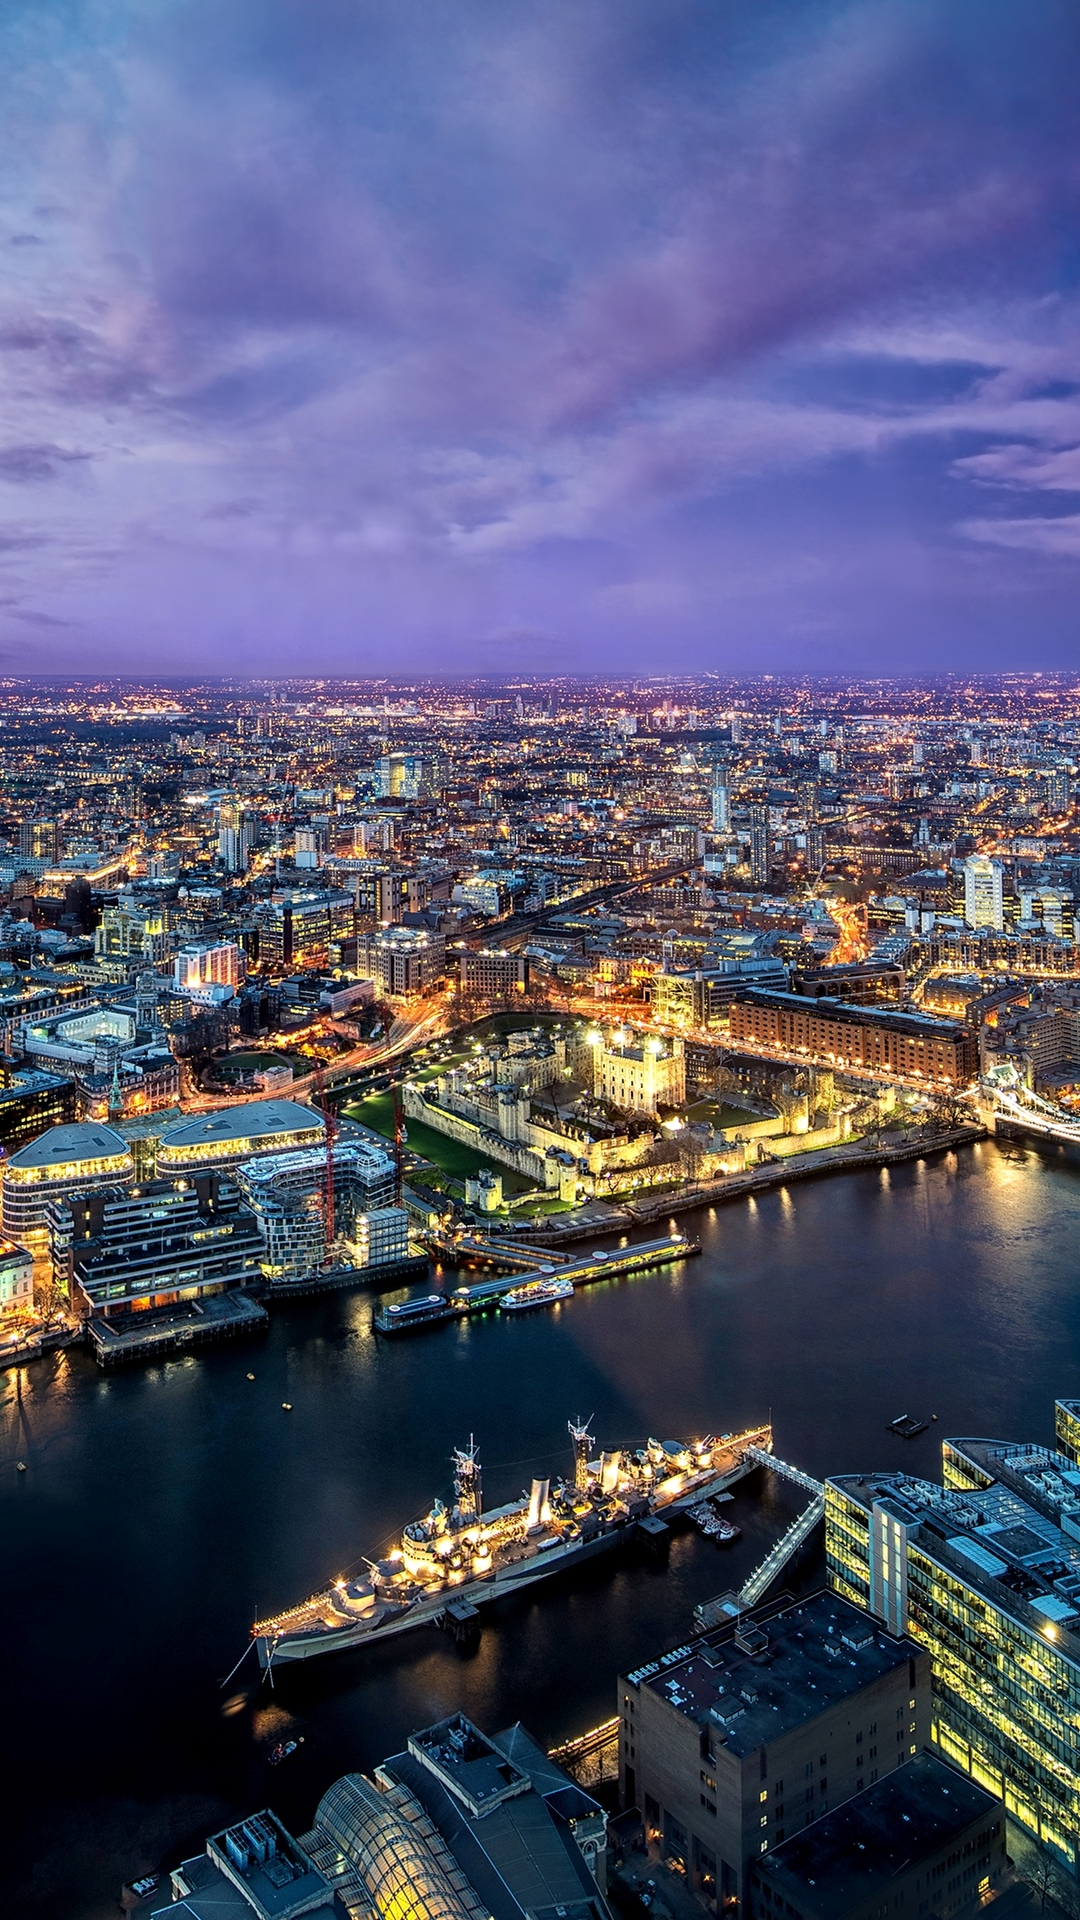 Free Download London View From Shard 4k Ultra Hd Wallpaper 4k Wallpapernet 1080x1920 For Your Desktop Mobile Tablet Explore 45 London Wallpaper 4k Ultra Hd Christian Wallpaper Moving 4k